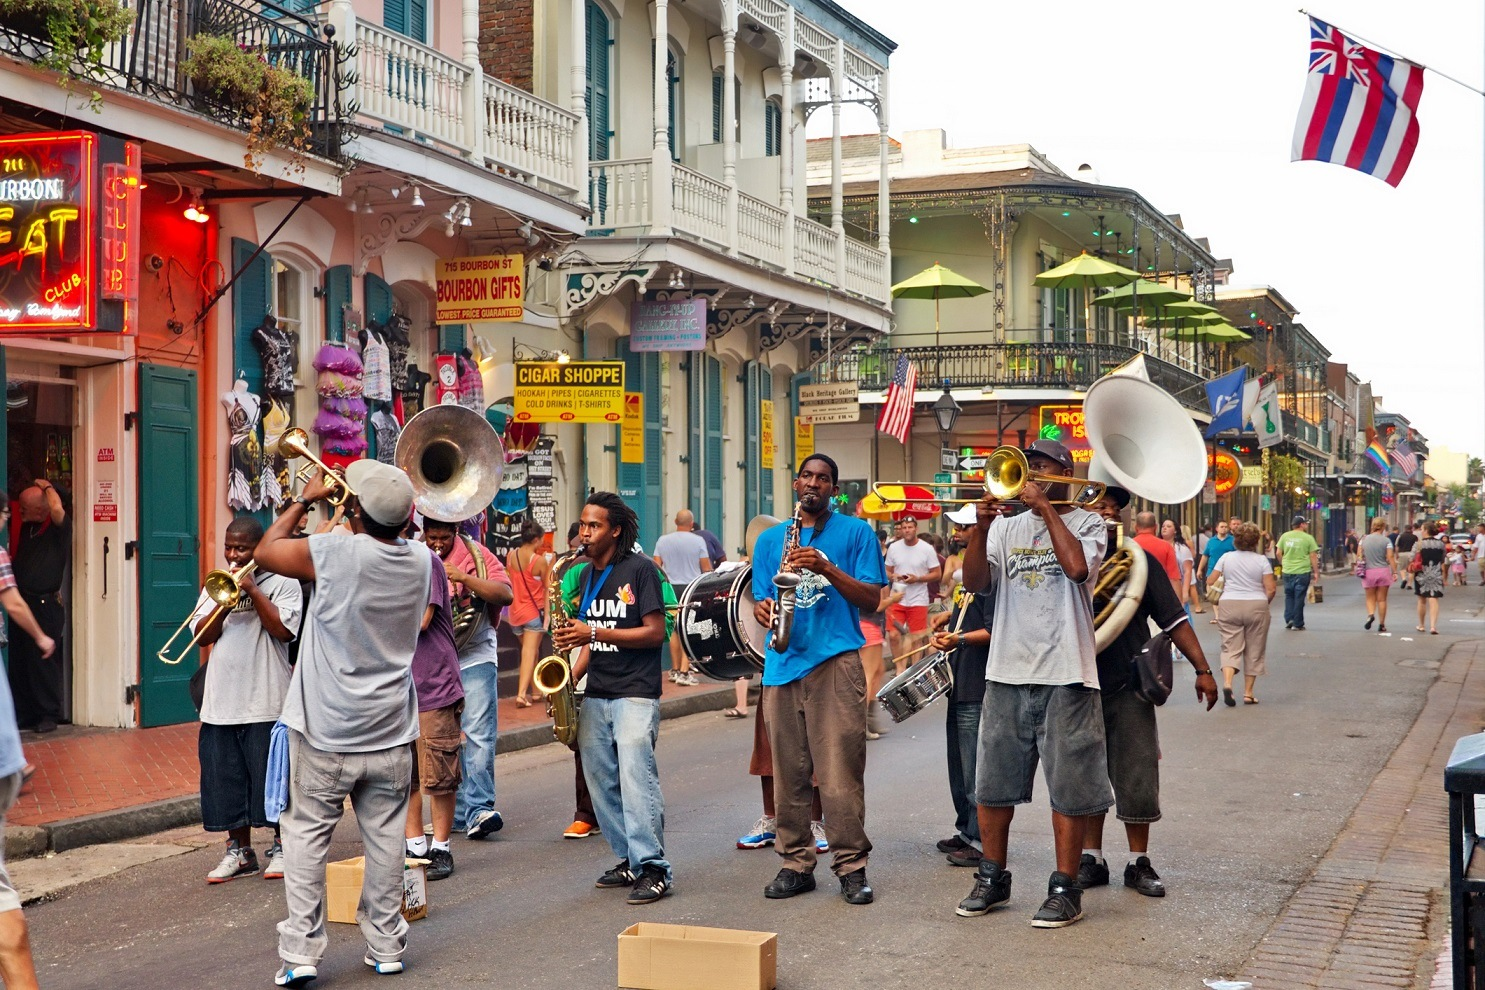 In New Orleans on Bourbon St. on August 7, 2013 a jazz band plays jazz melodies in the street for donations from the tourists and locals passing by on this hot summer evening